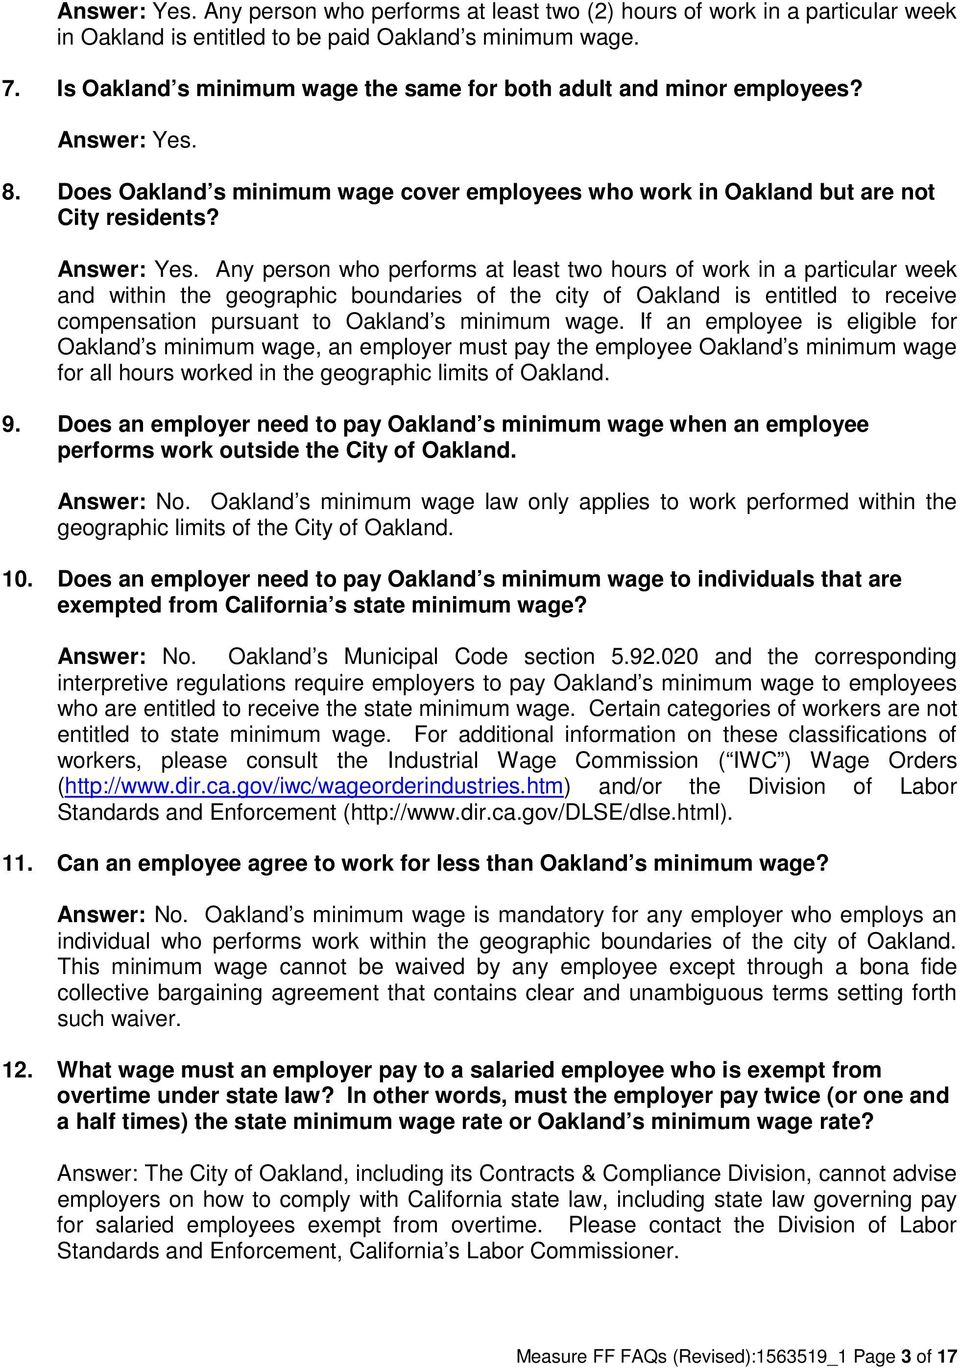 8. Does Oakland s minimum wage cover employees who work in Oakland but are not City residents? Answer: Yes.